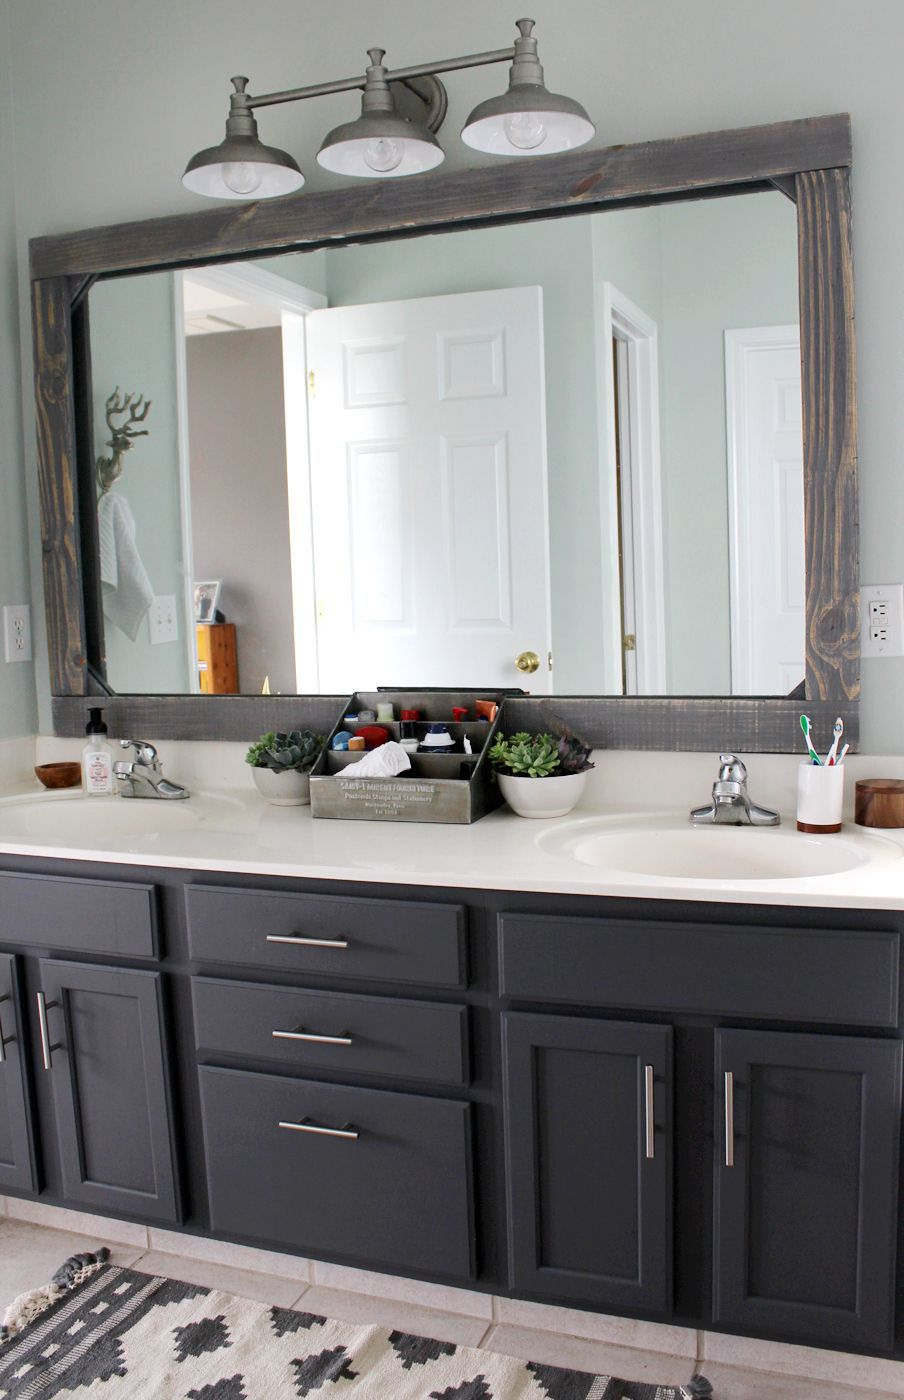 Bathroom Mirror Ideas To Reflect Your Style Bathroom Remodel Master Bathroom Mirror Design Master Bathroom Makeover